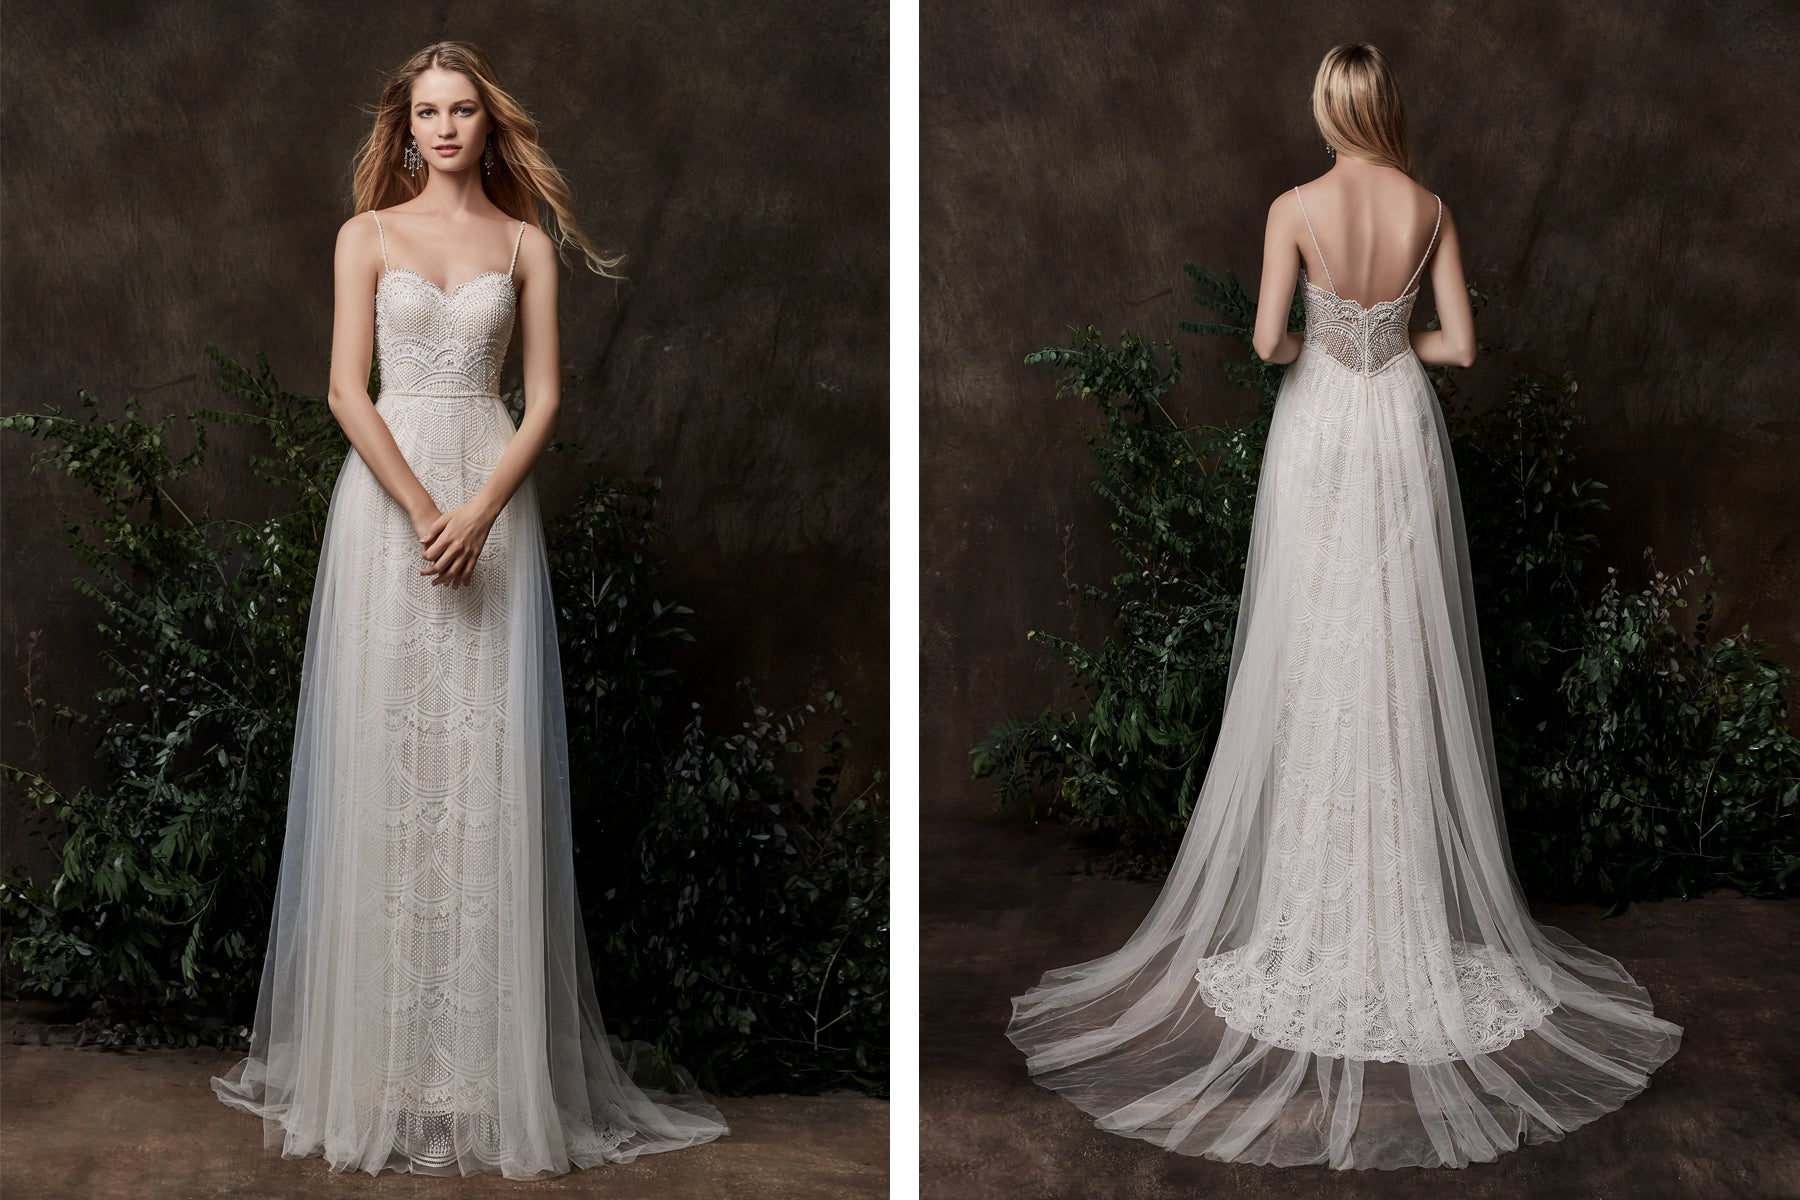 Eternal_Bridal_Affordable_Boho_Luxe_Chic_Nostalgia_Ivy